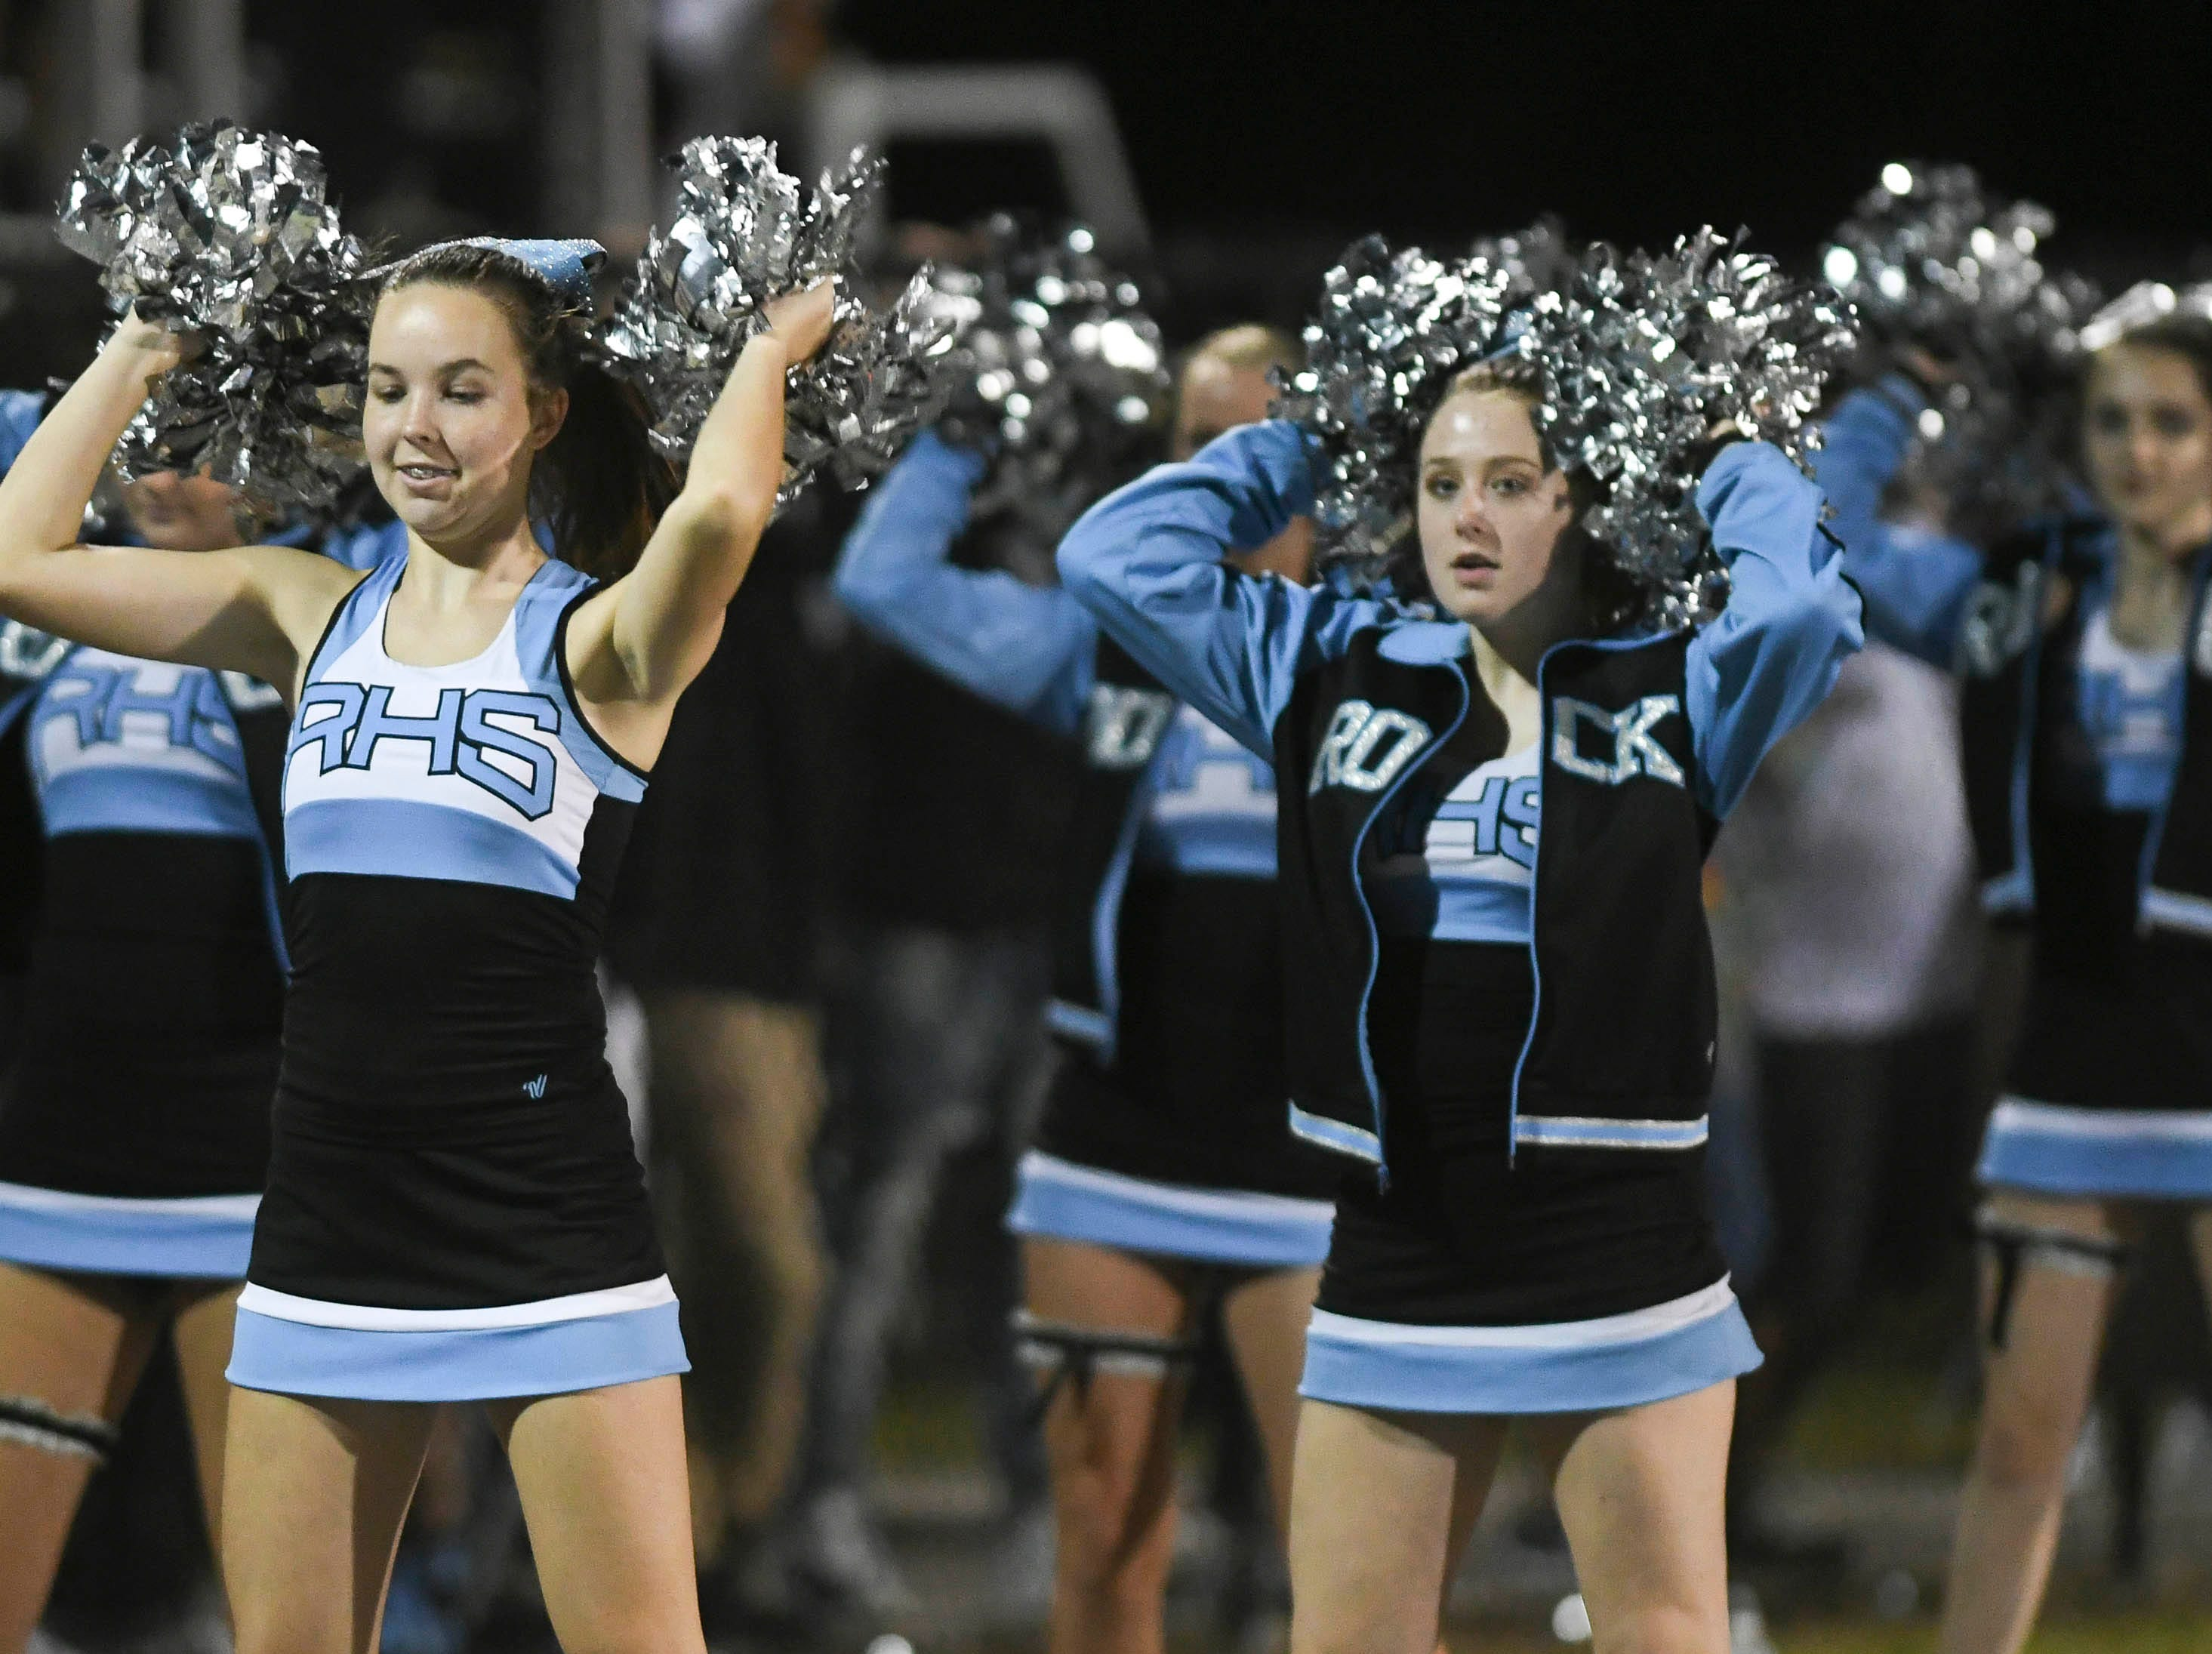 Rockledge cheerleaders dance to the music during Friday's game against Cocoa..